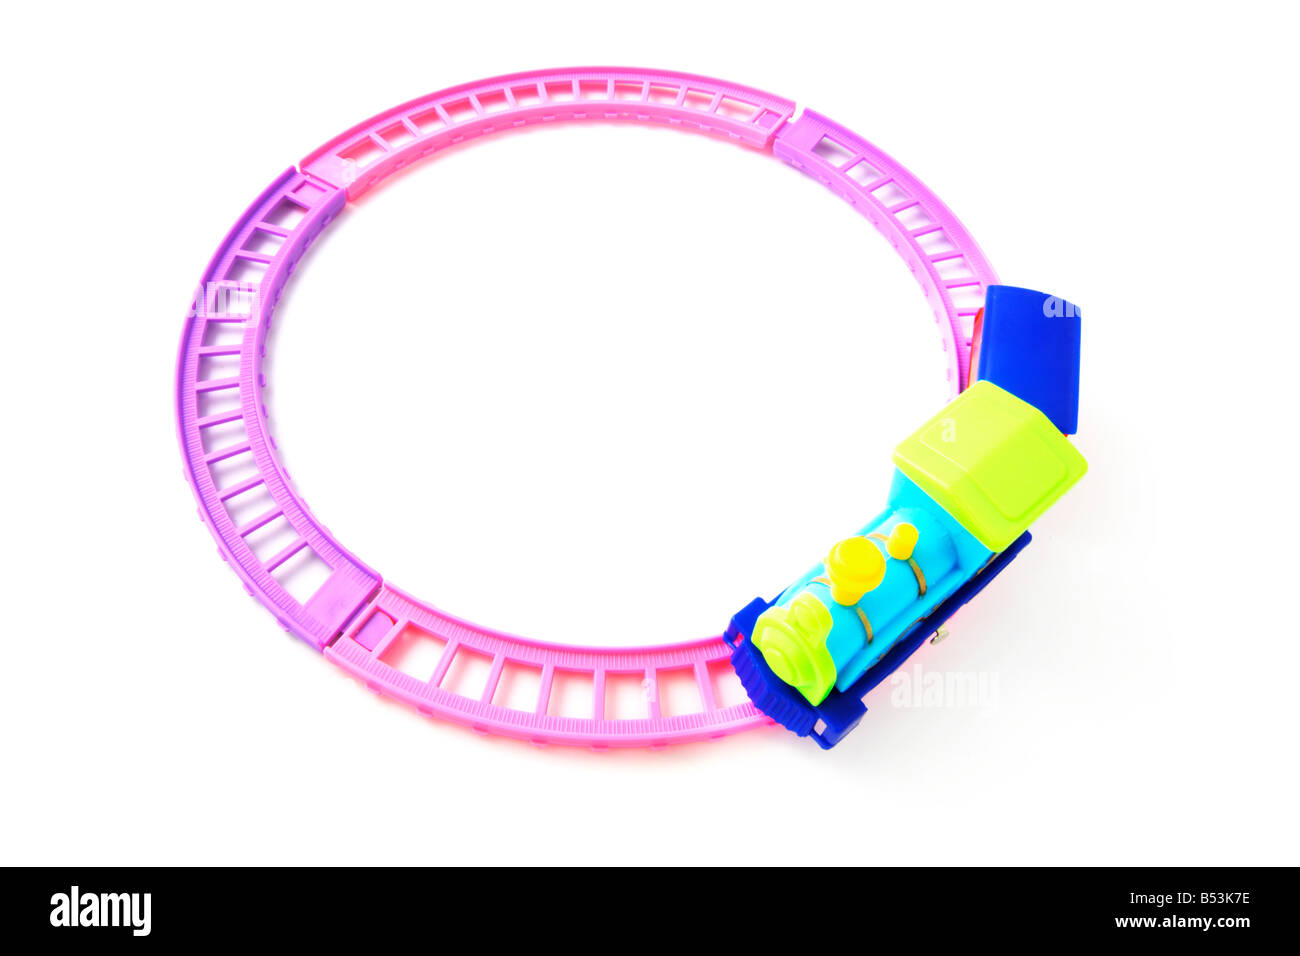 Toy Train and RailwayTrack - Stock Image